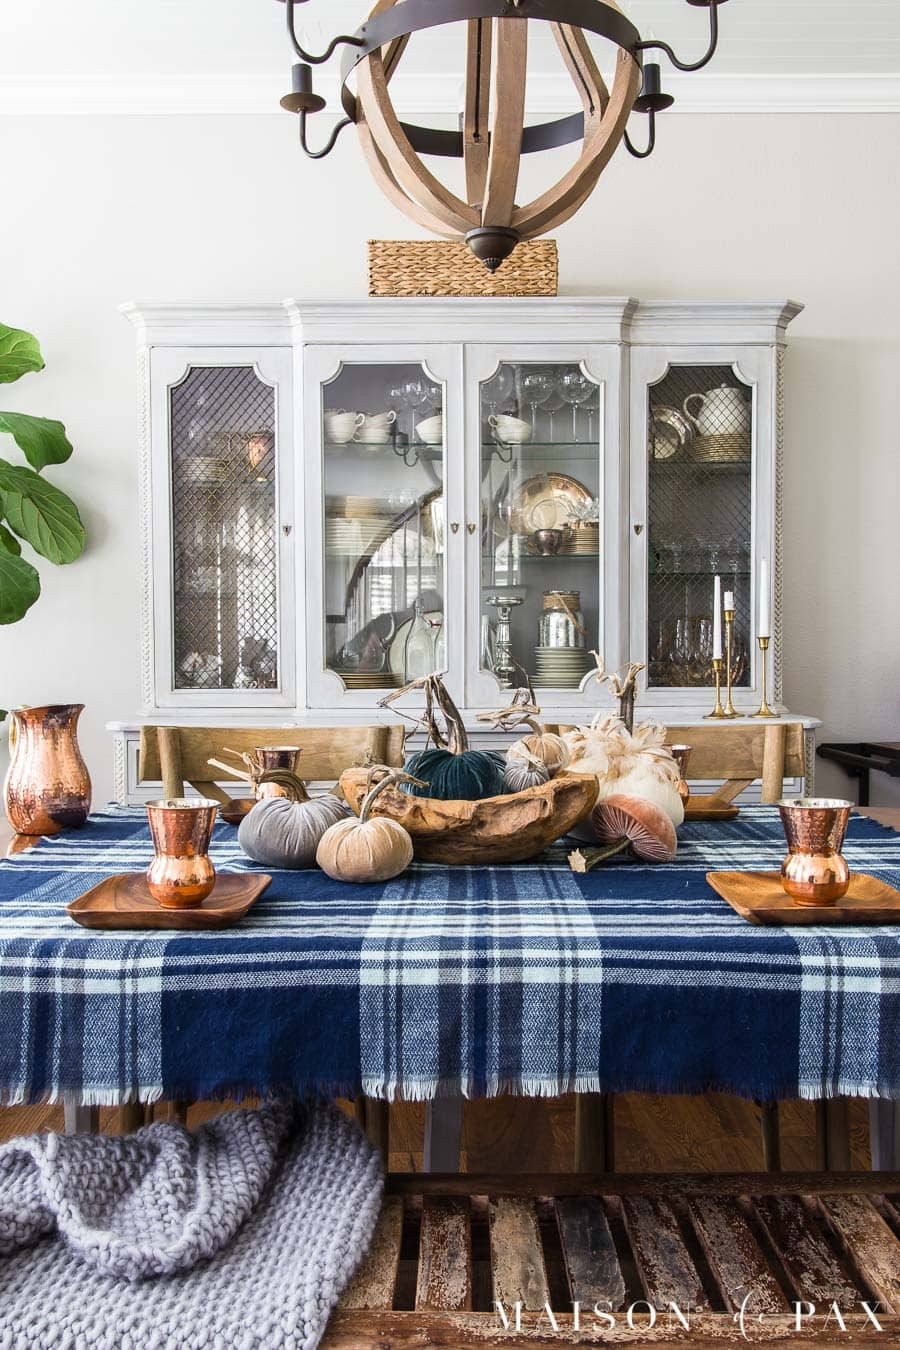 Get ideas for non-traditional fall decorating with this blue velvet pumpkin centerpiece! #velvetpumpkins #falltable #bluefalldecor #falldecorating #falldecor #tablescape #plaid #pumpkincenterpiece